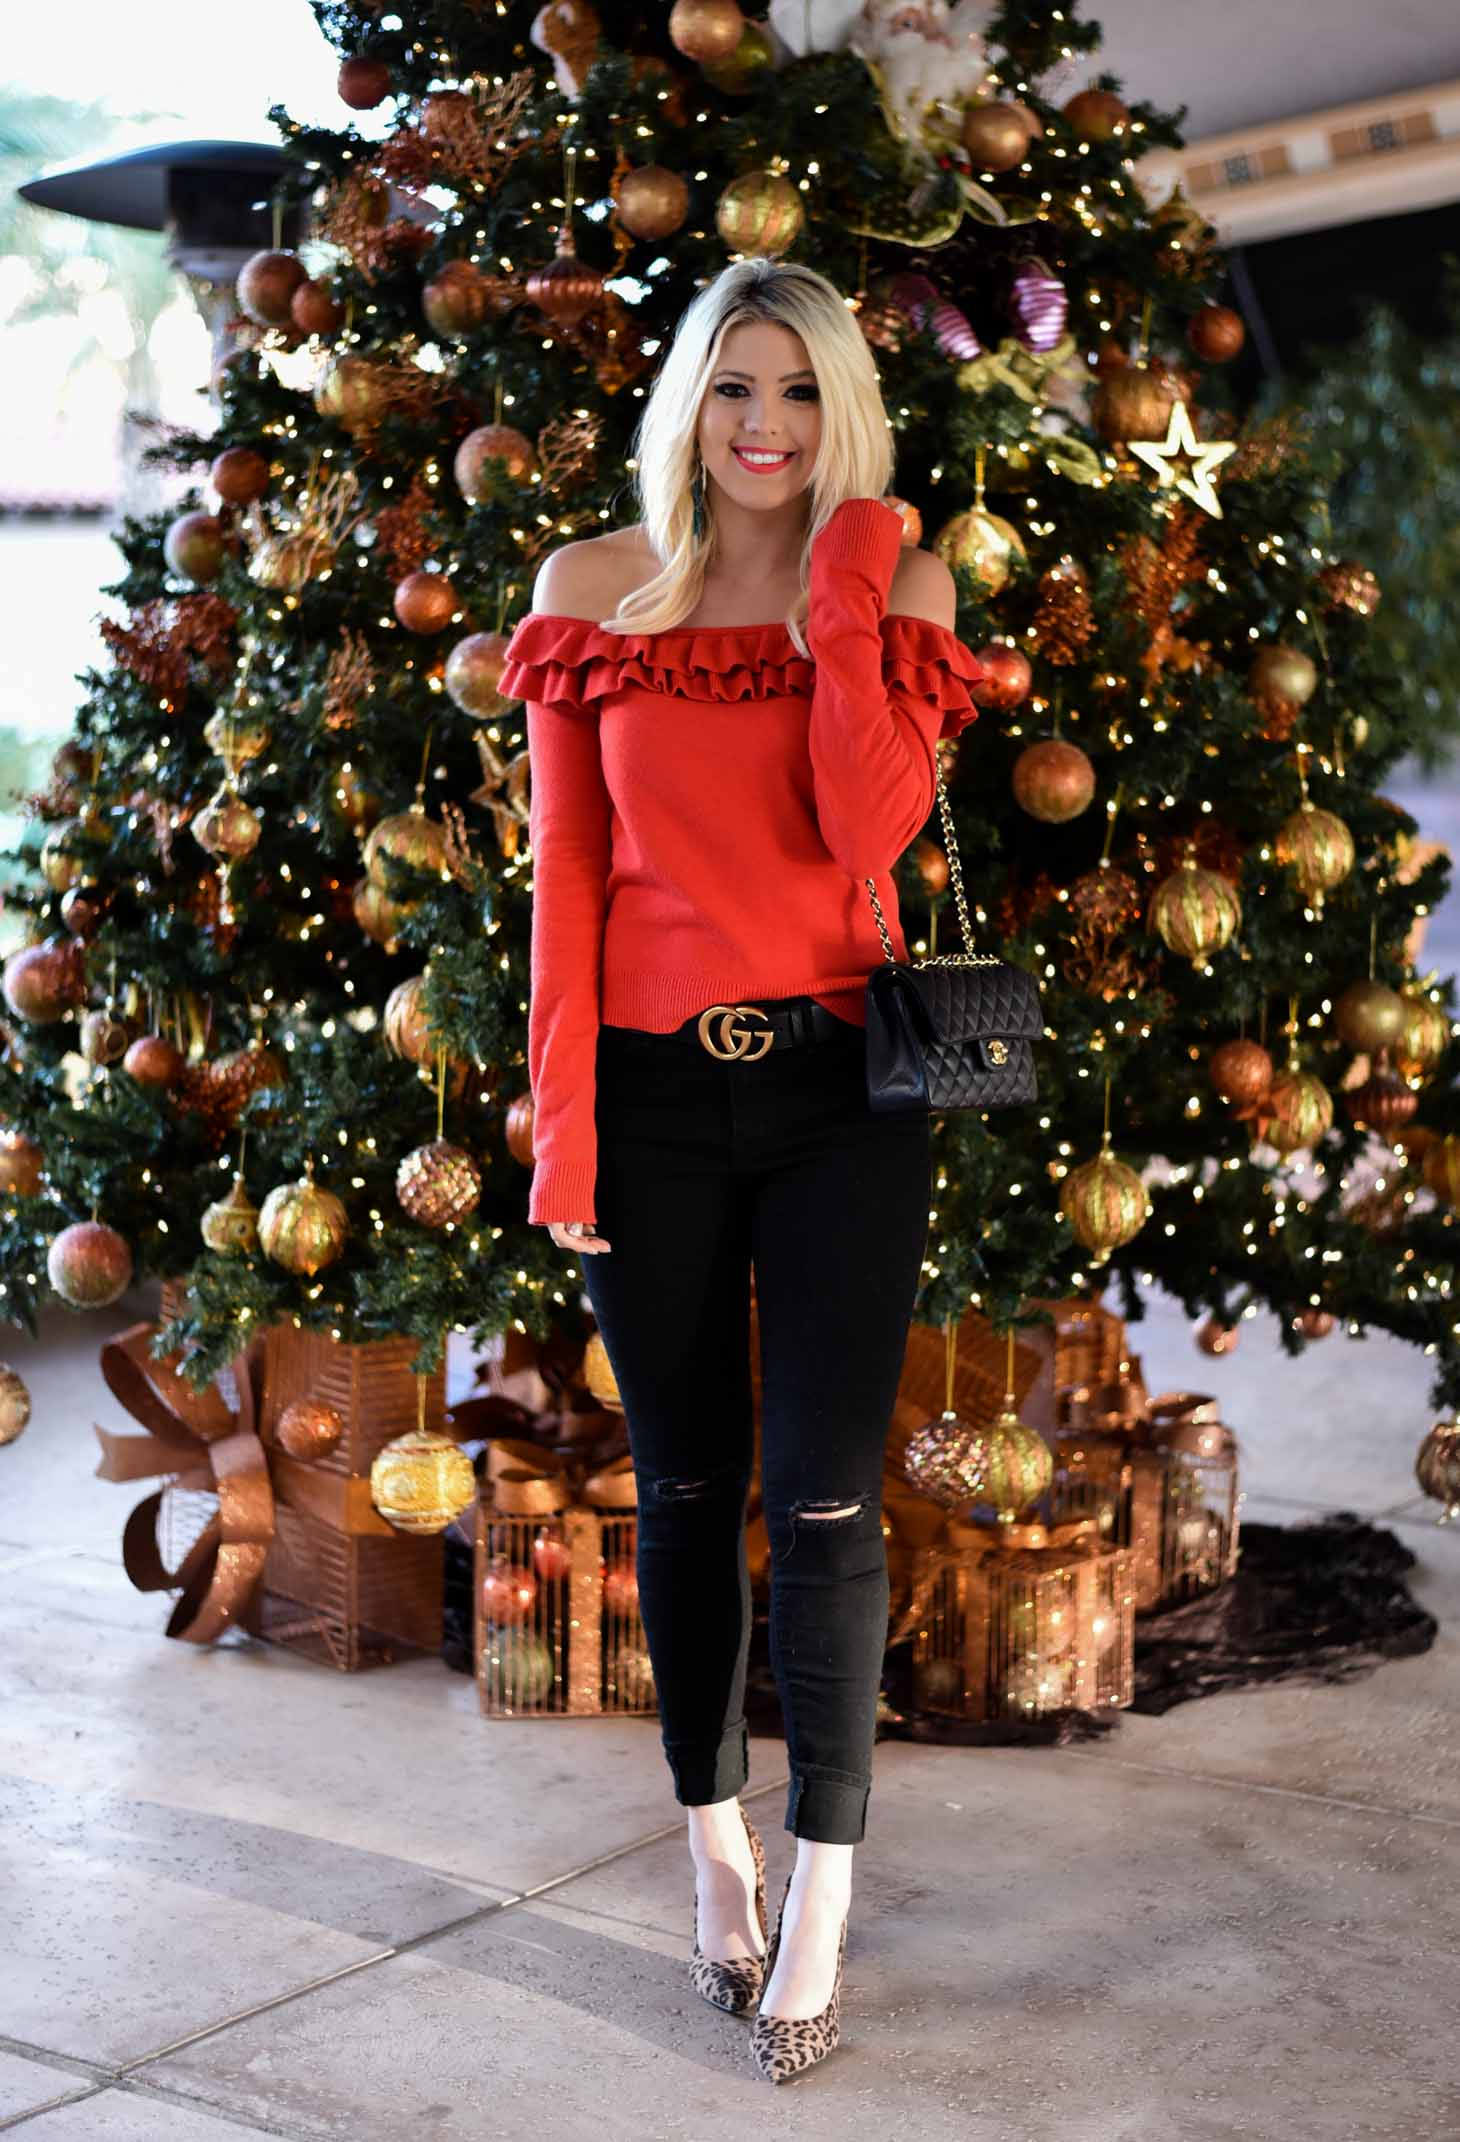 Erin Elizabeth of Wink and a Twirl in Holiday Casual Style